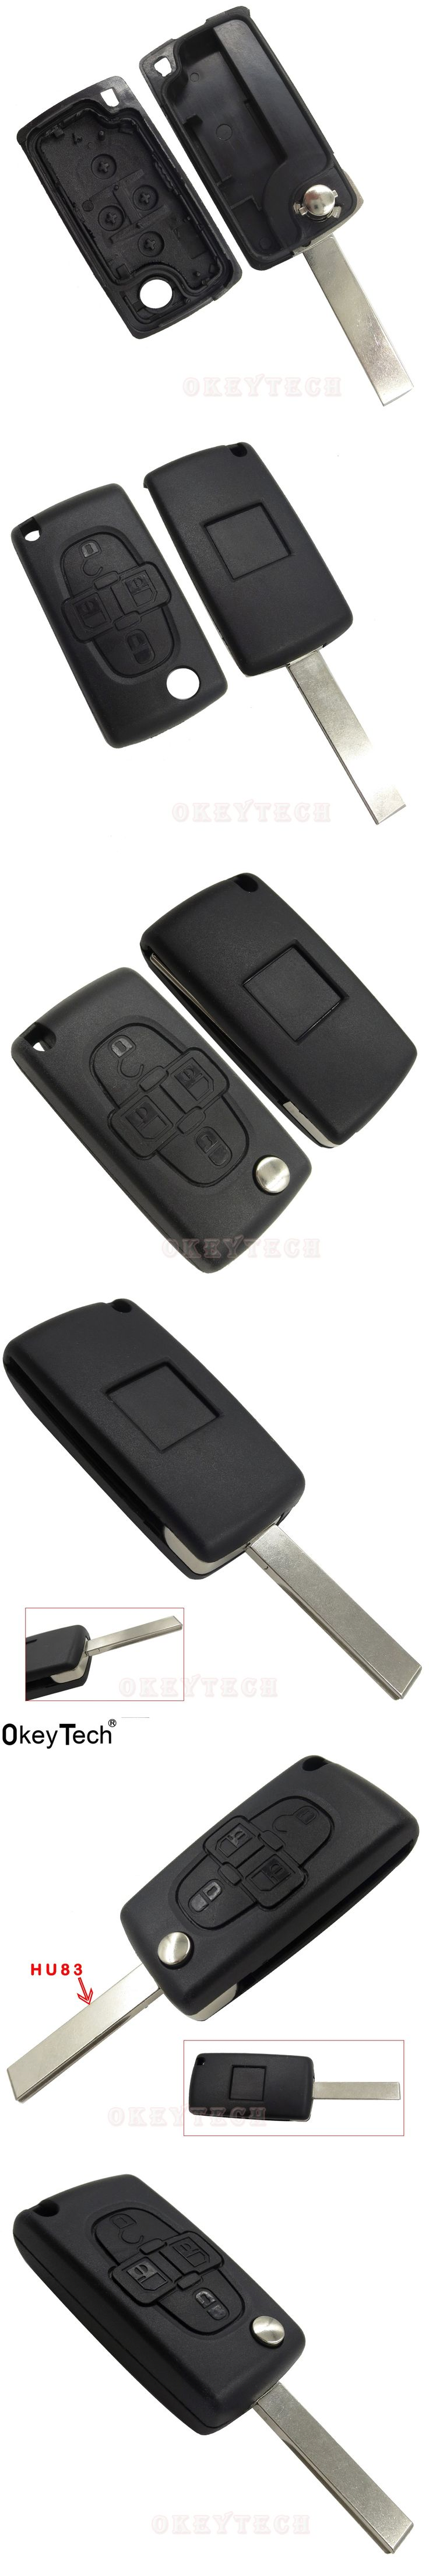 OkeyTech 4 Buttons Remote Folding Flid Car Key Case Shell Cover Fob Blade Styling For Peugeot 1007 For Citroen C8 Without Logo